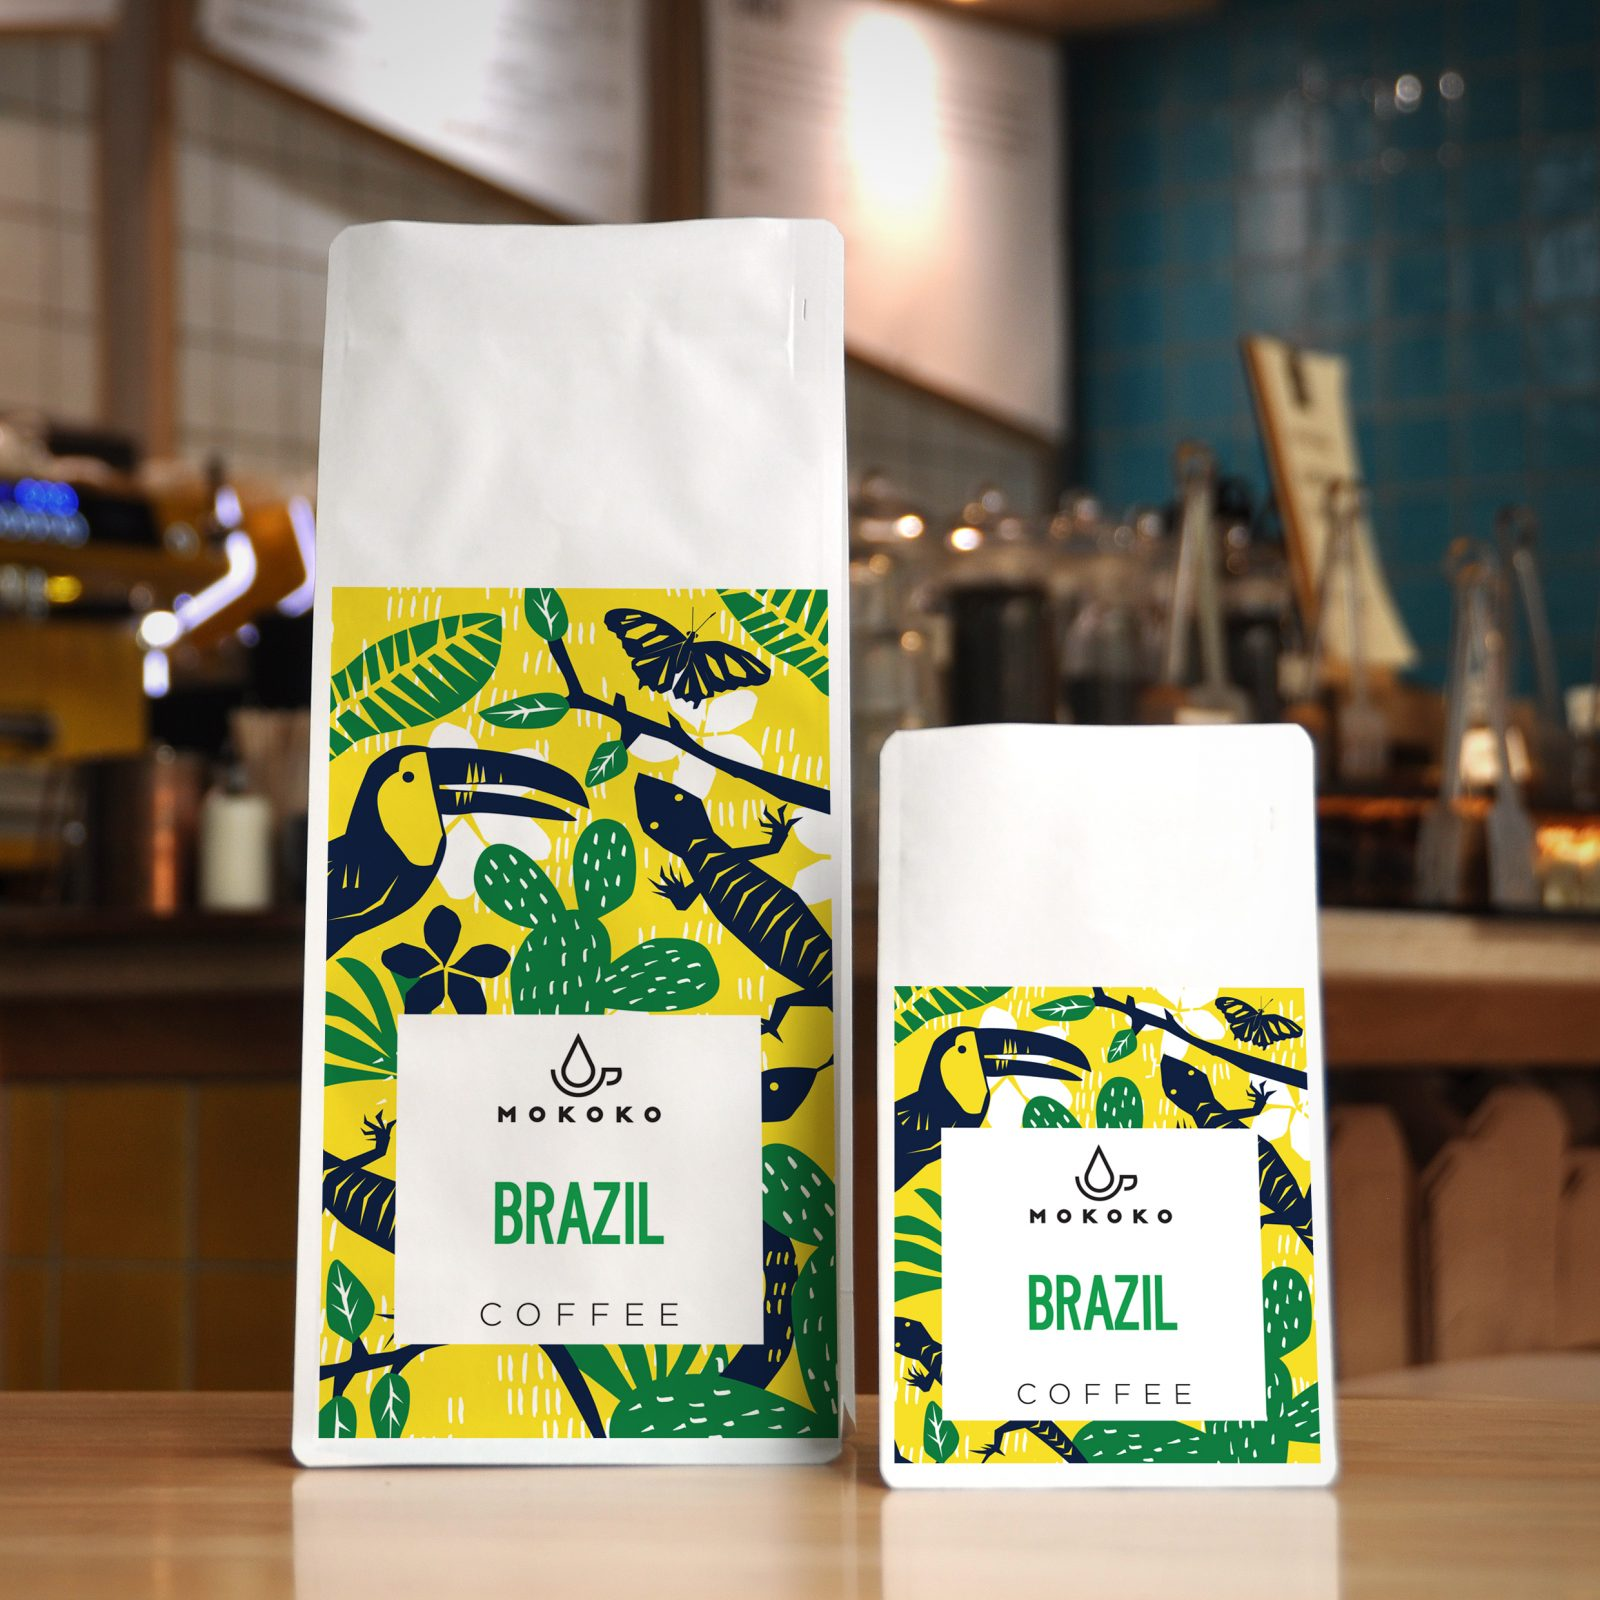 Coffee Packaging Design for Independent Coffee Shop and Bakery based in the UK